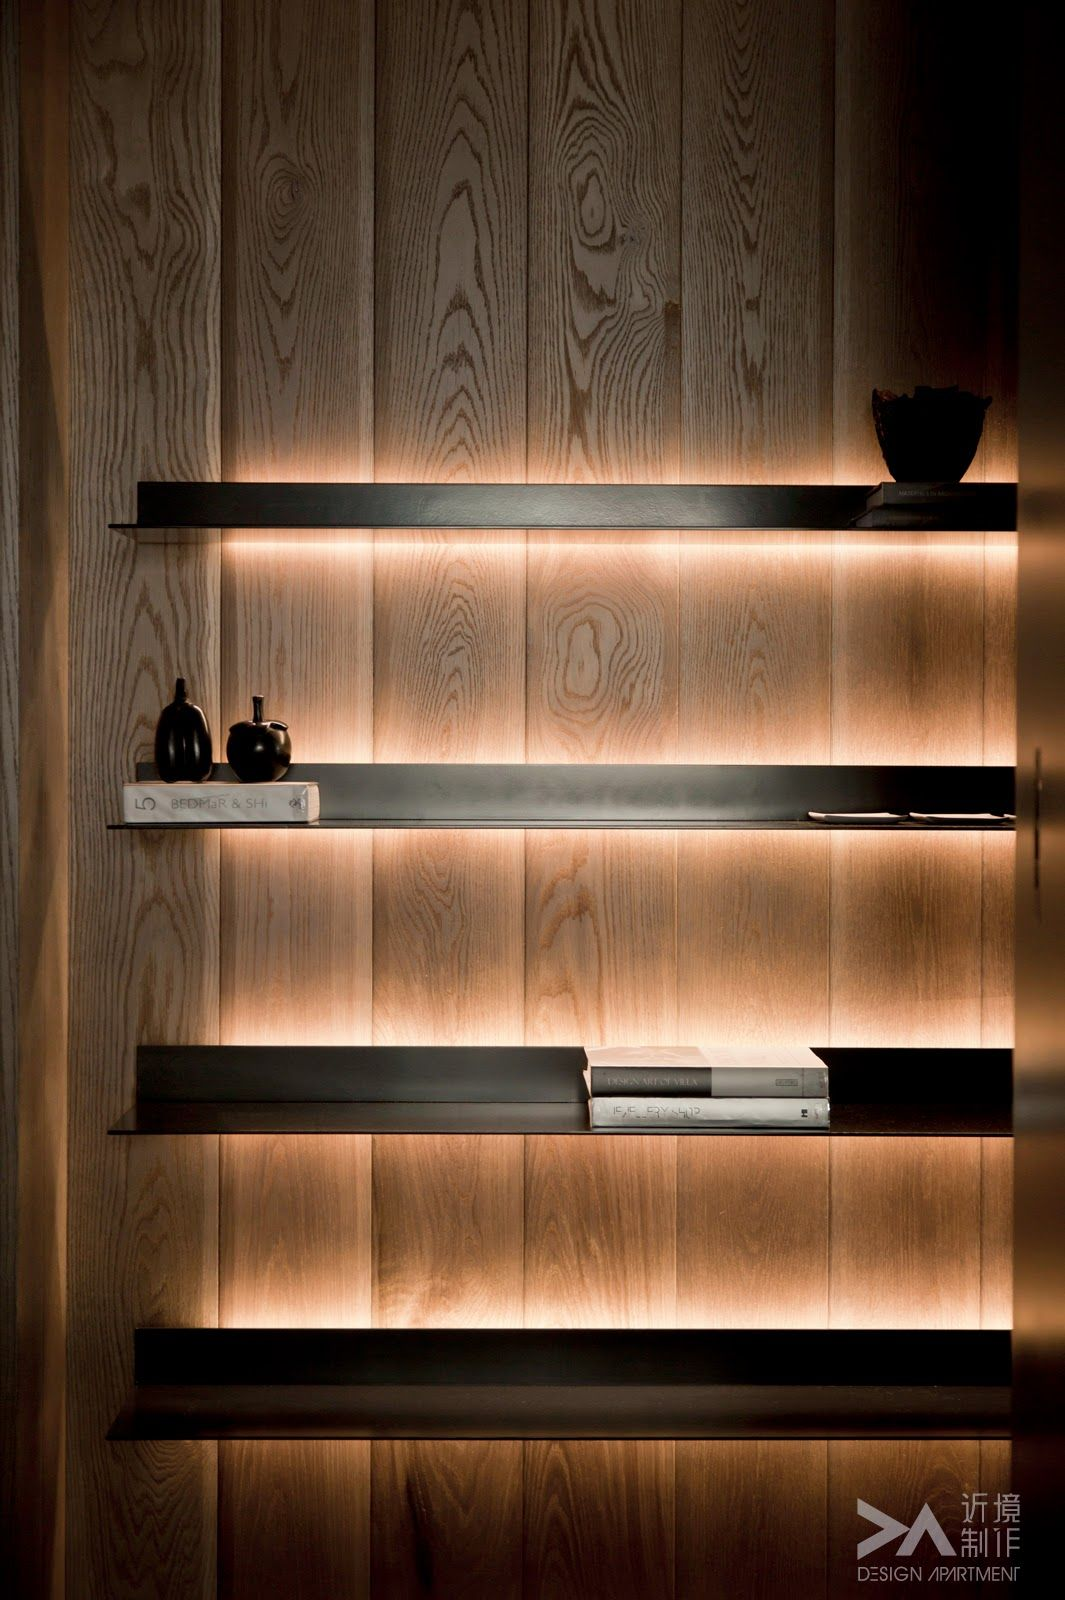 Shelving Light You Can Achieve This Using Formed Lighting